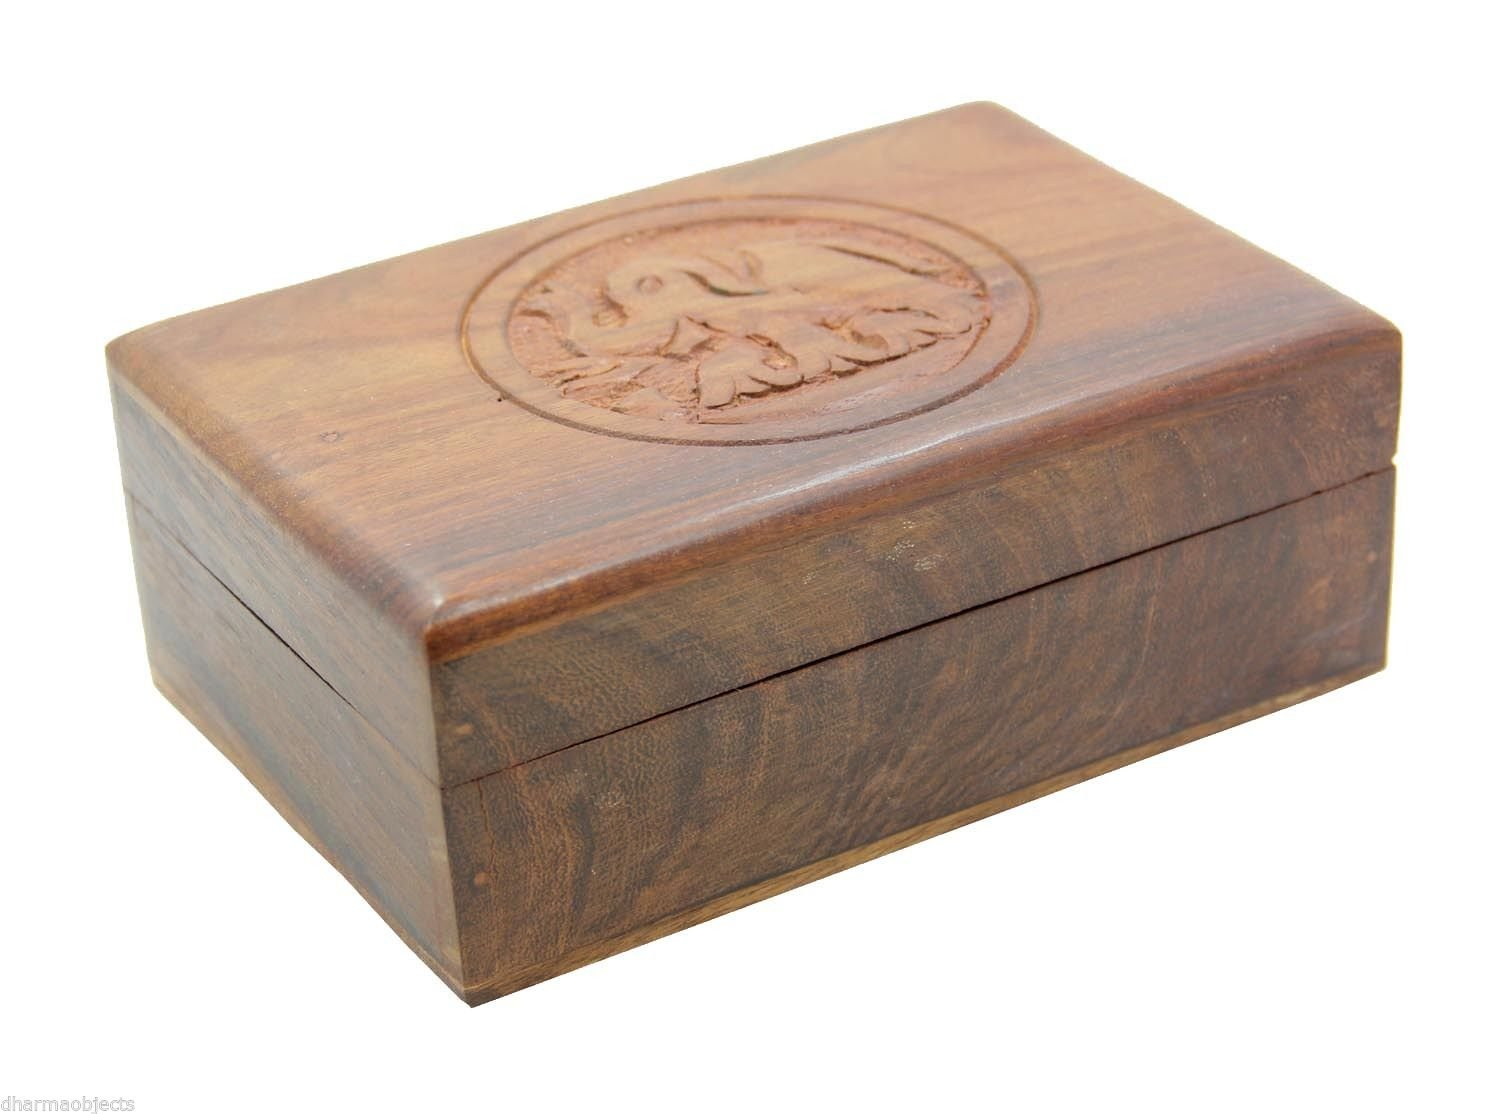 Square Wooden Storage Boxes Wooden Storage Box Hand